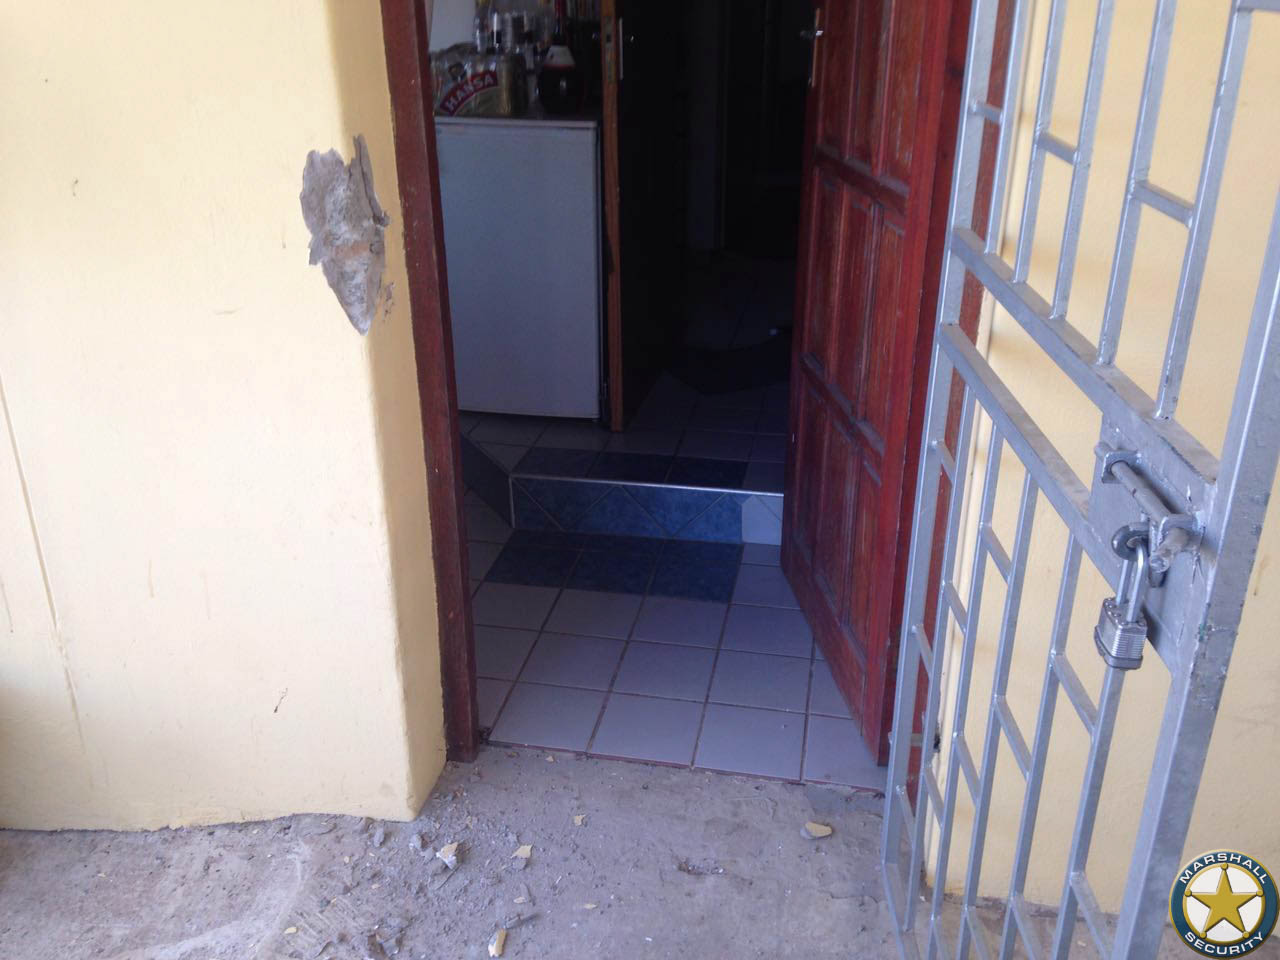 Housebreaking reported in Rose Hill , Durban North